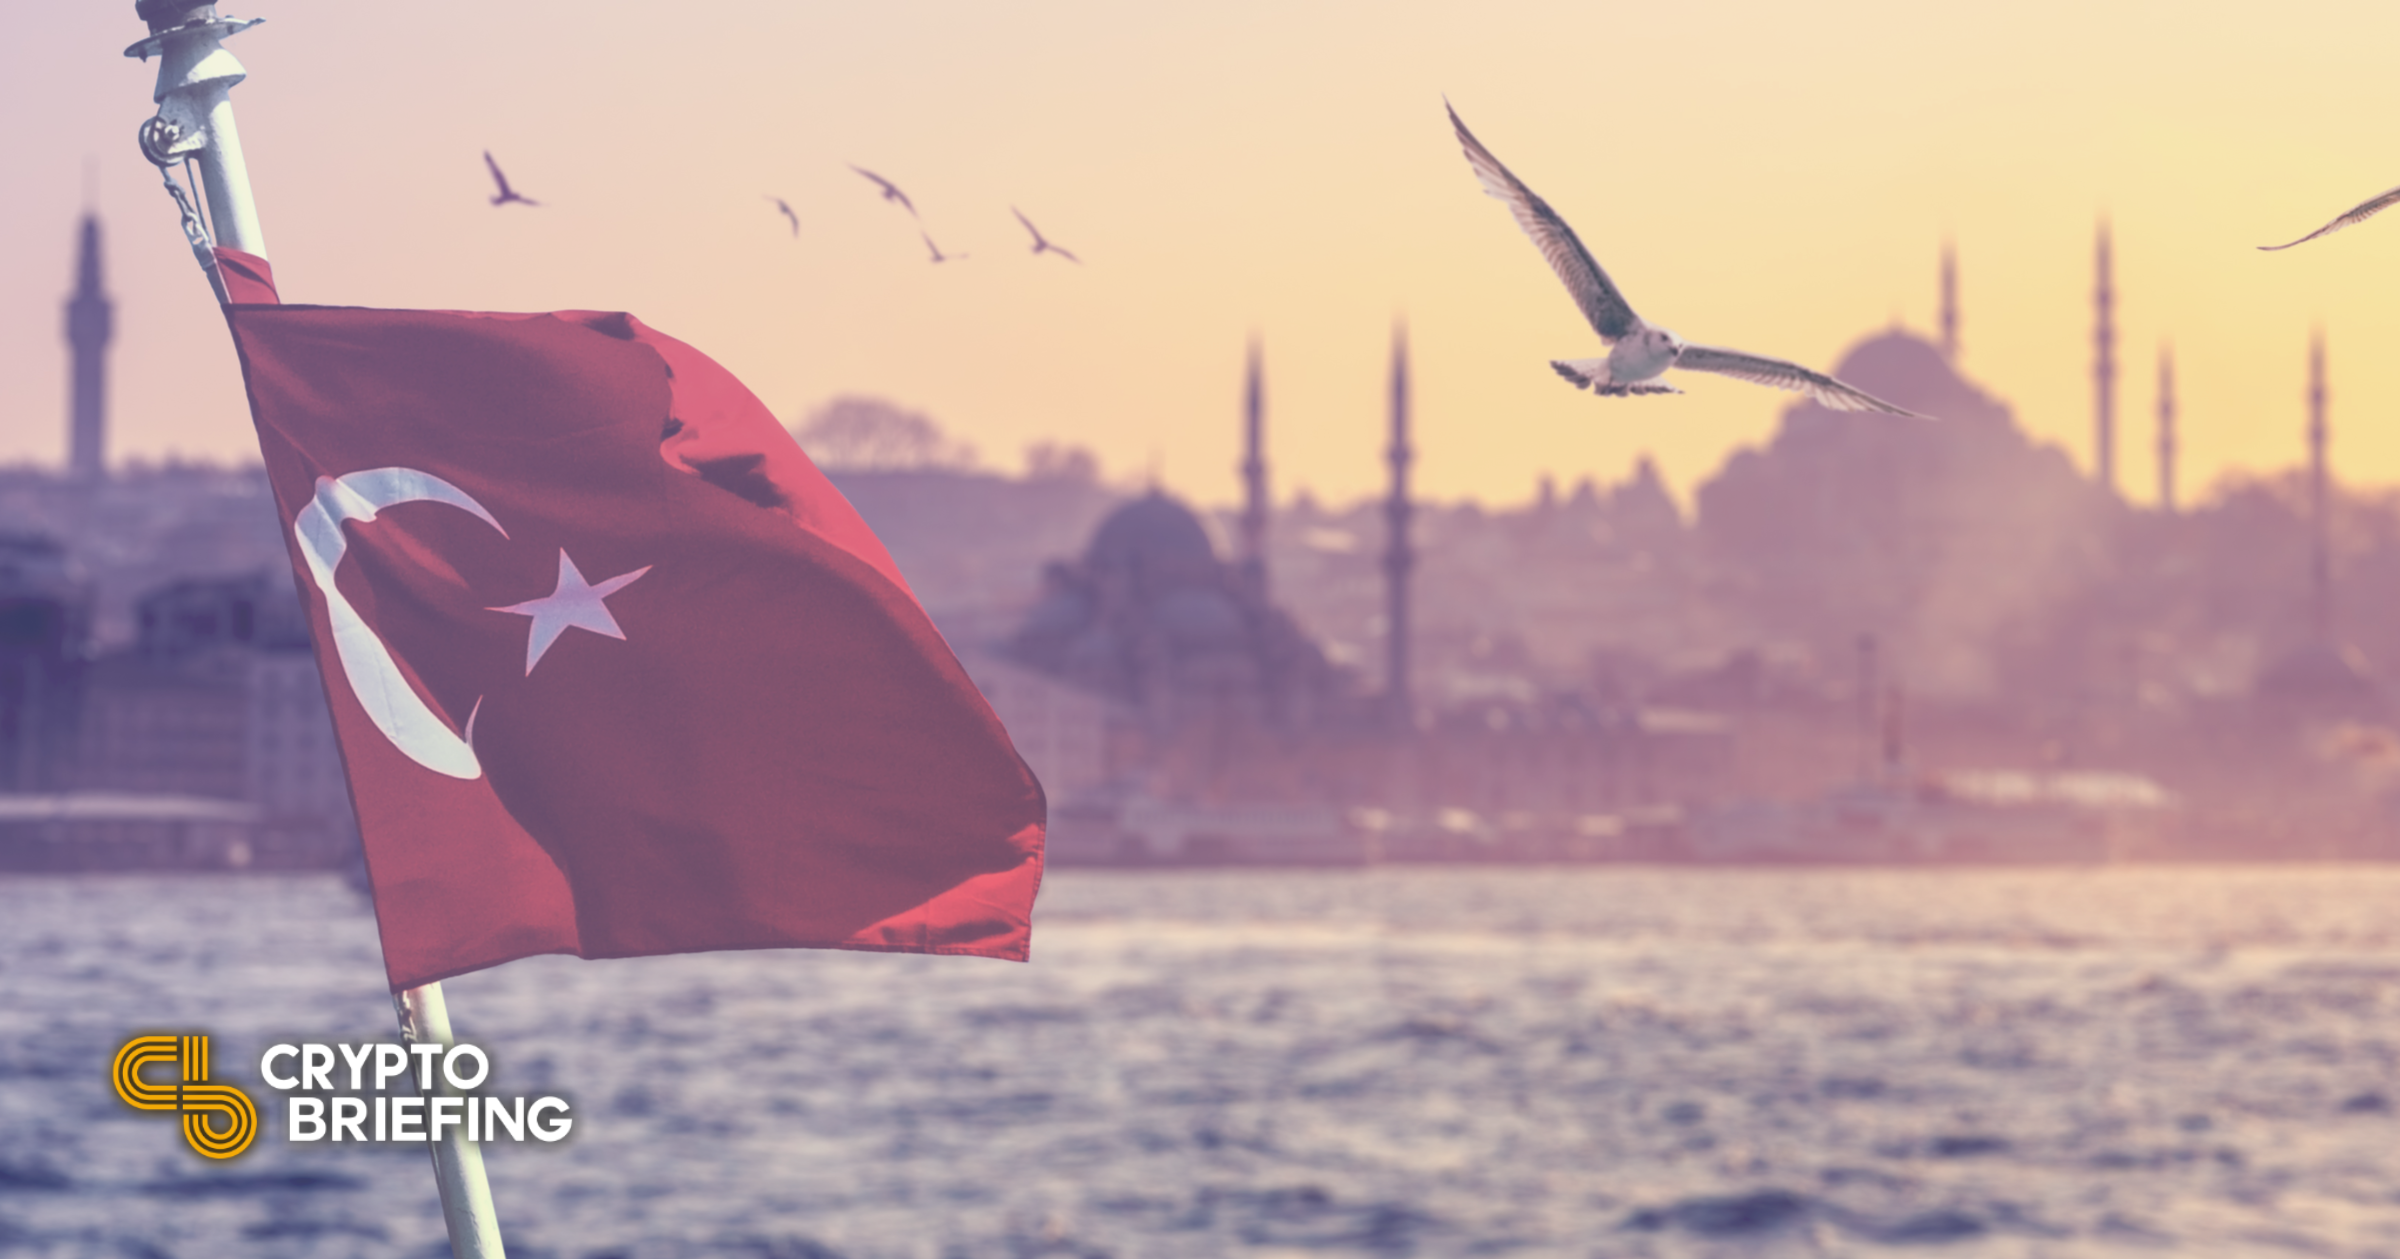 Turkey Bans the Use of Cryptocurrencies for Payments